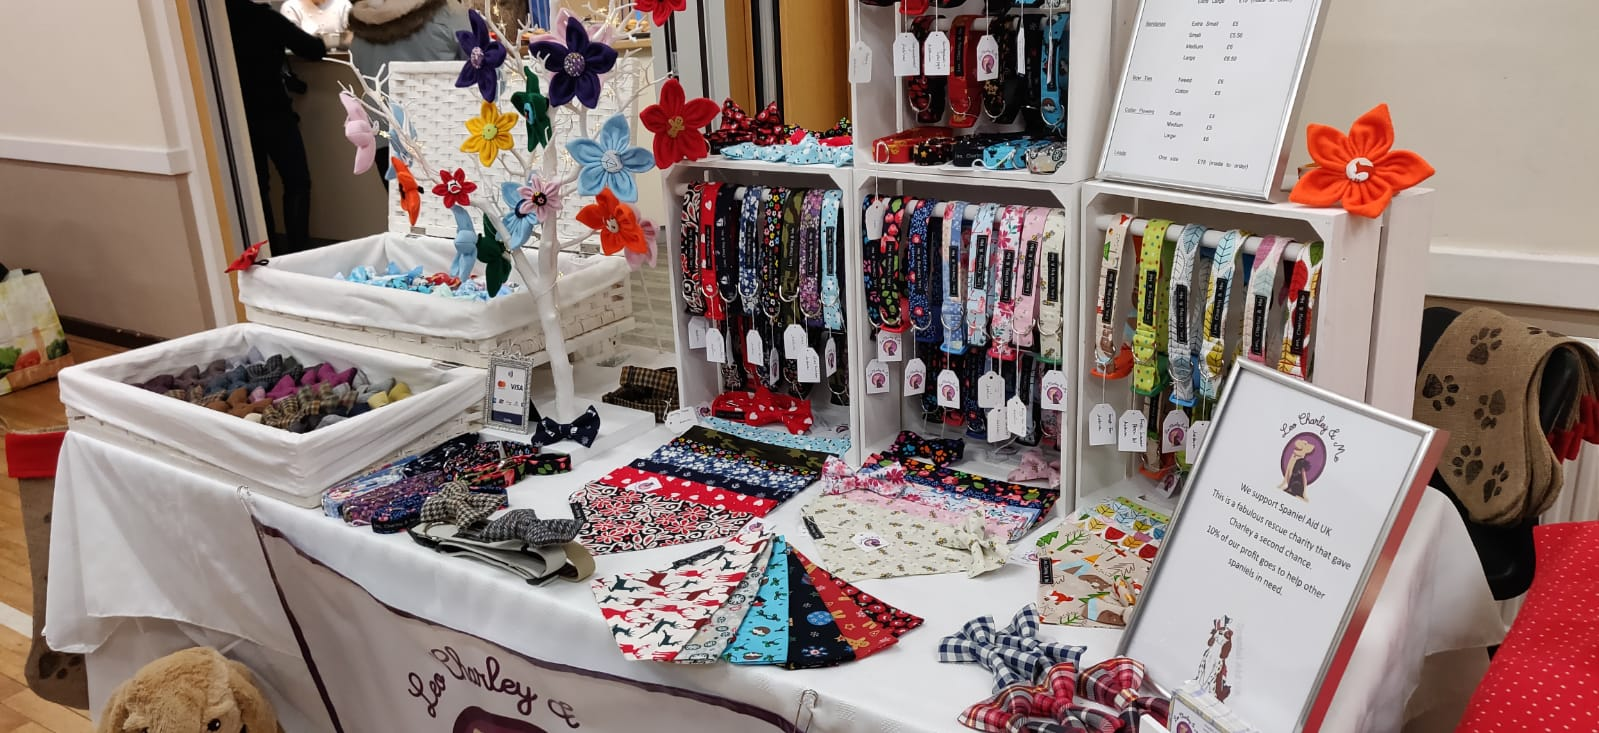 Leo Charley and Me stall selling fabric dog collars, leads, bandanas and bows.